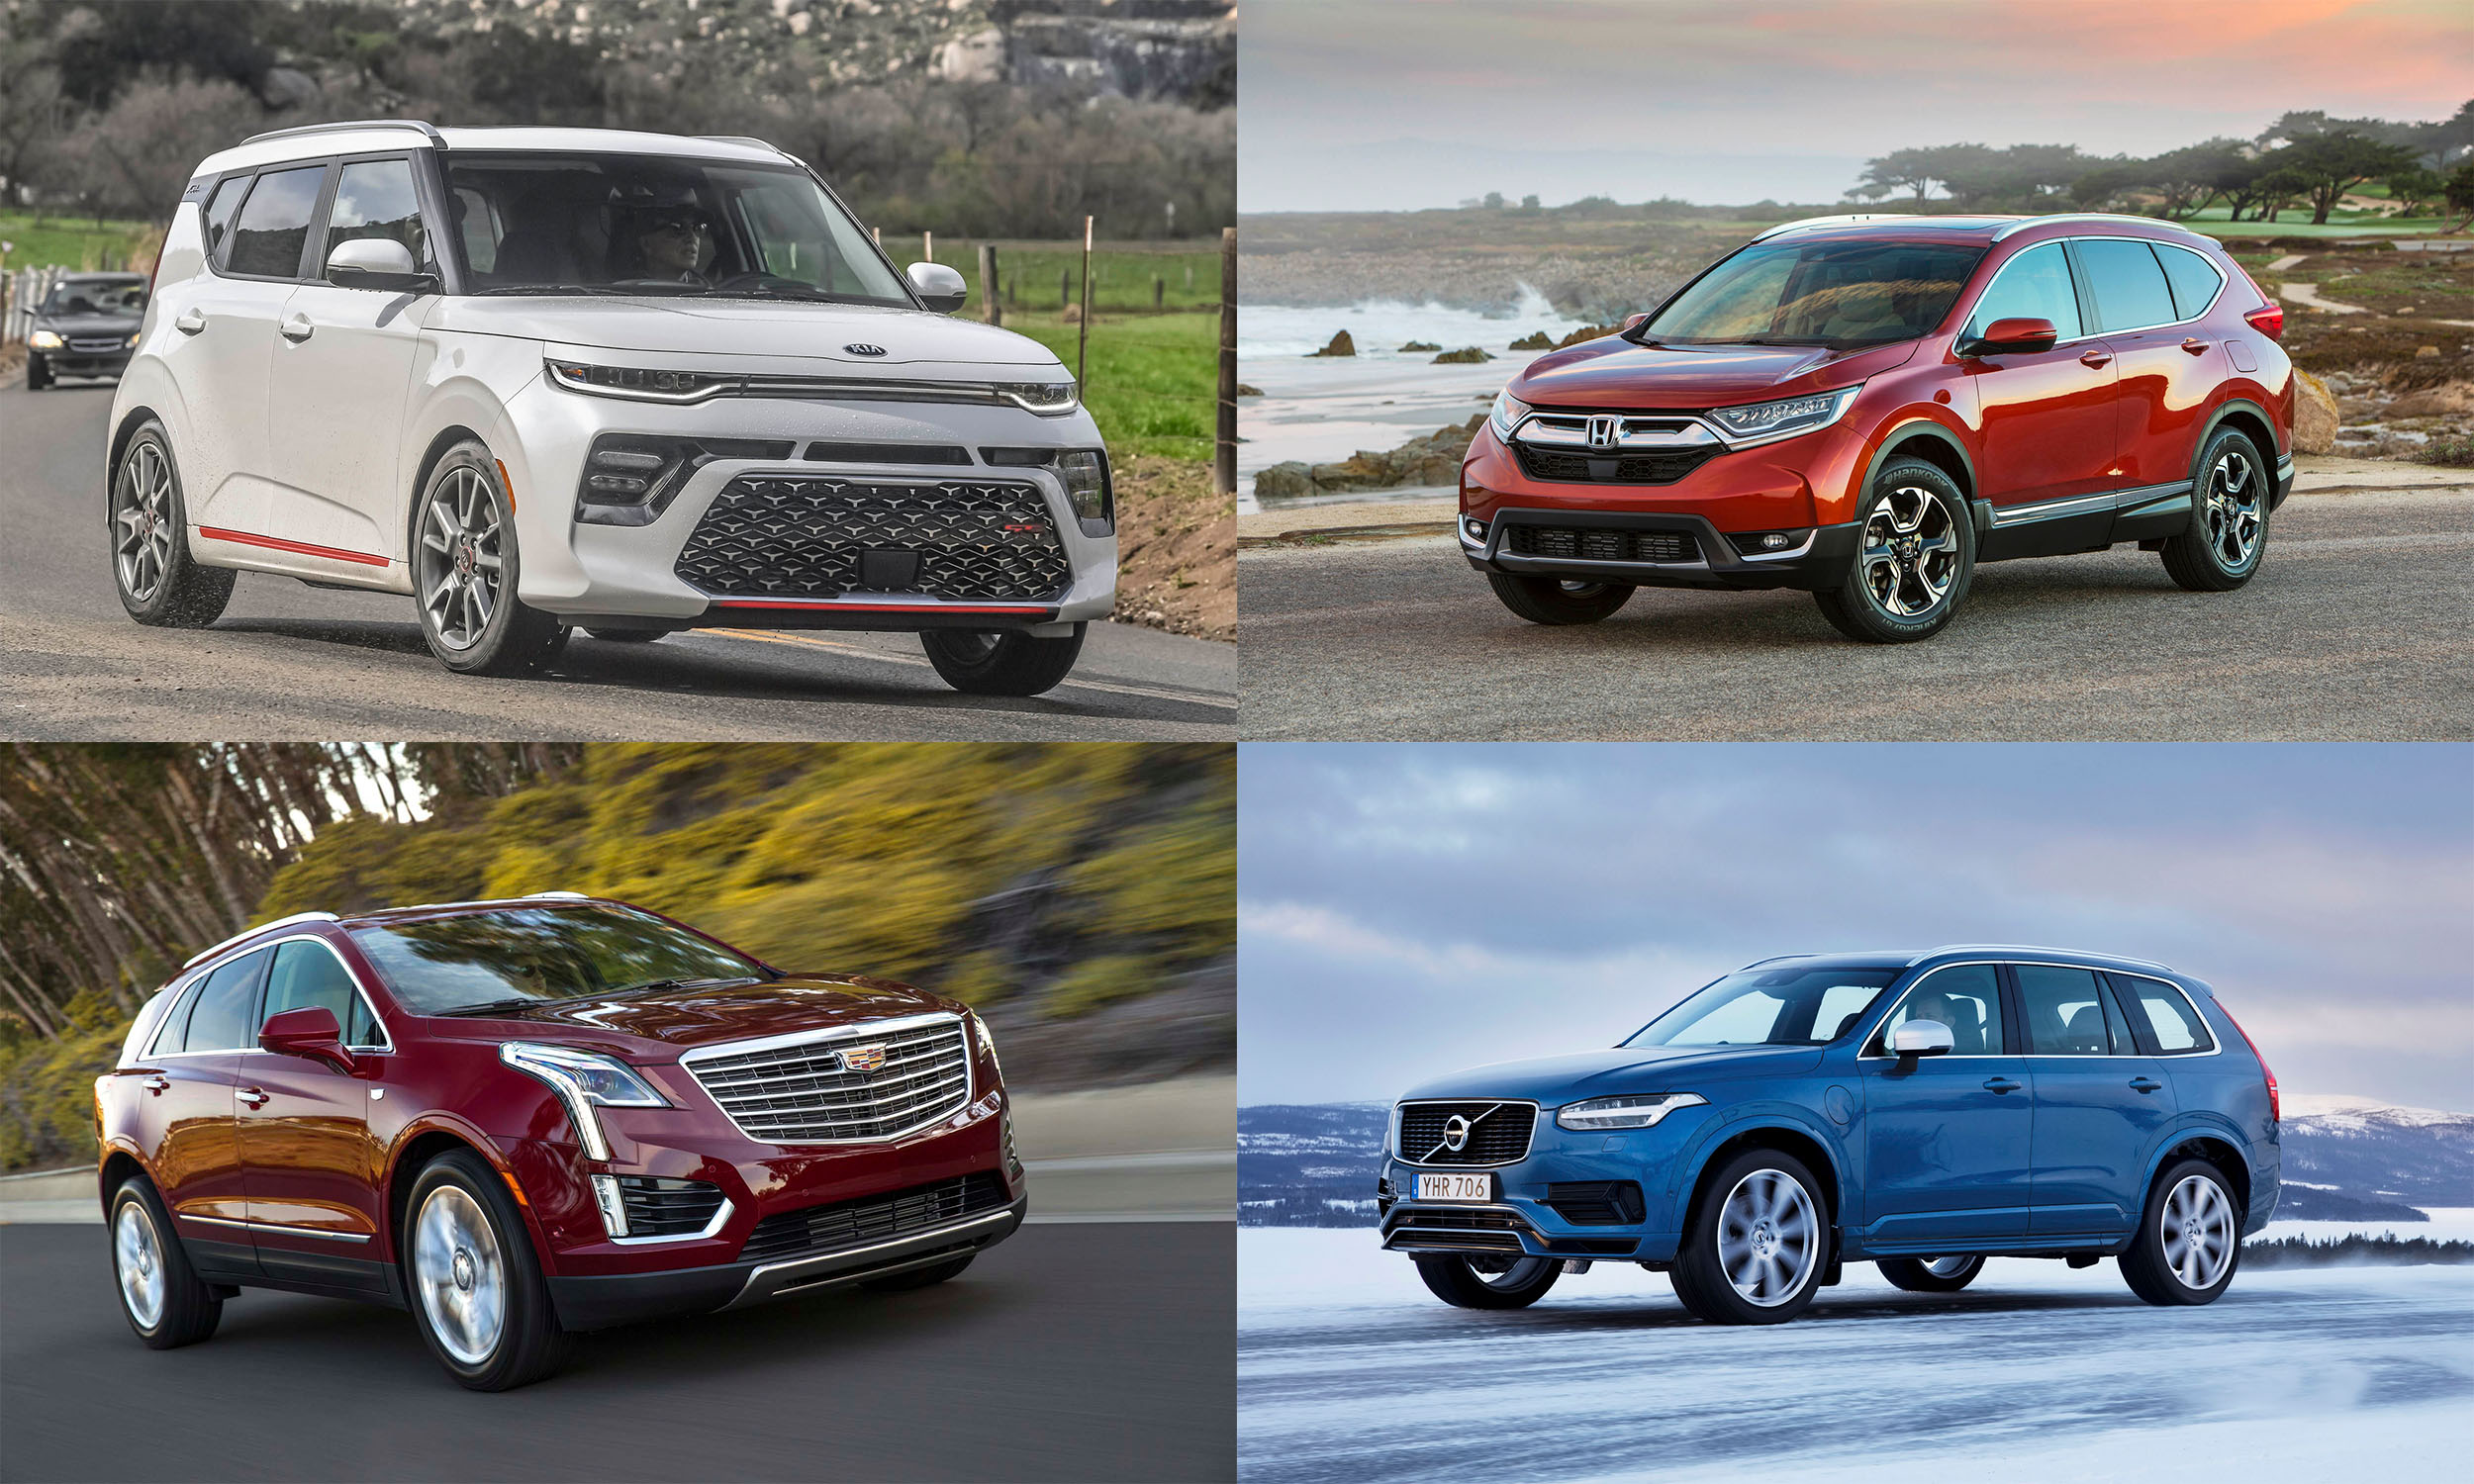 Best-Selling Cars in America — By Brand